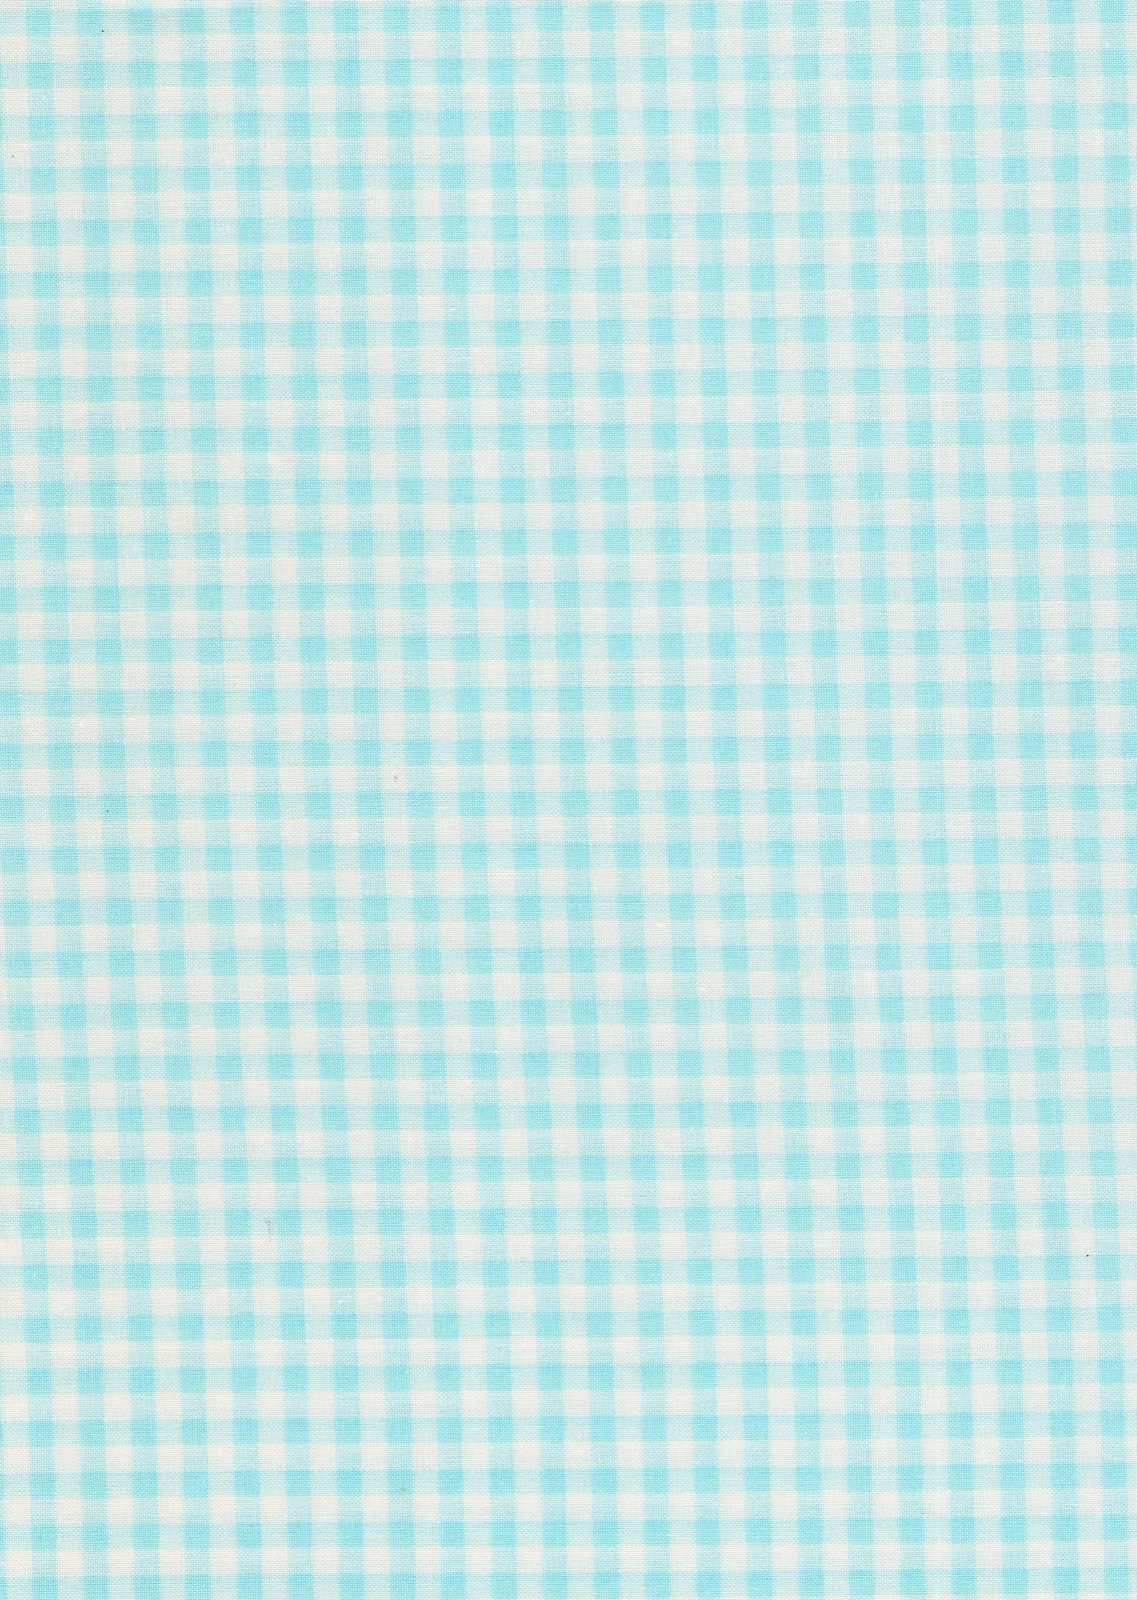 PROMO* FT-Children's Prints 49700 Blue - 1/8 Gingham